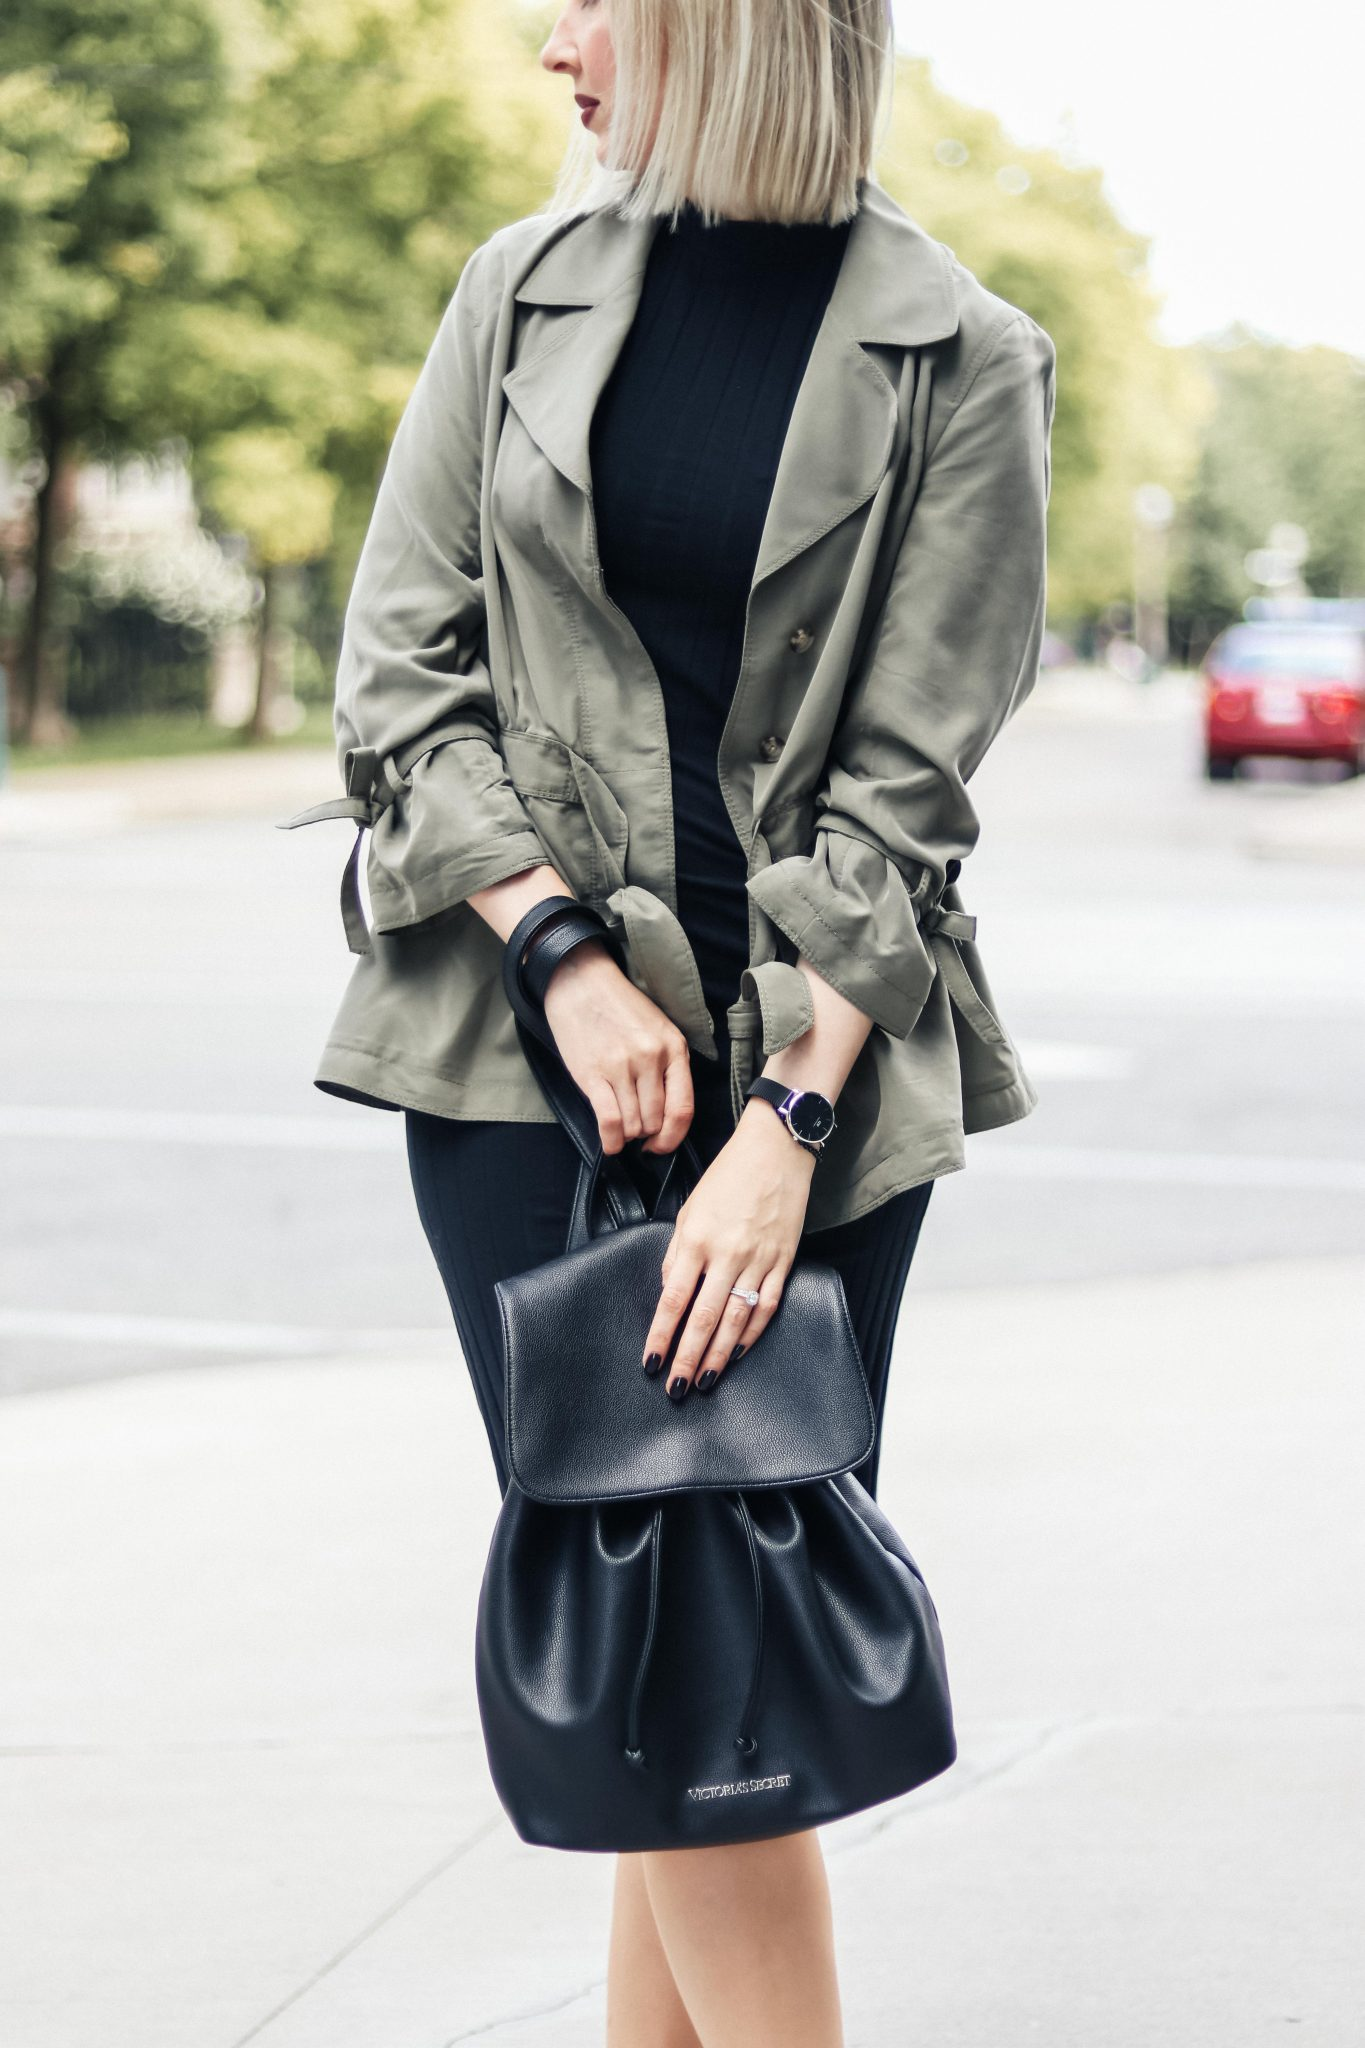 khaki top and black dress details